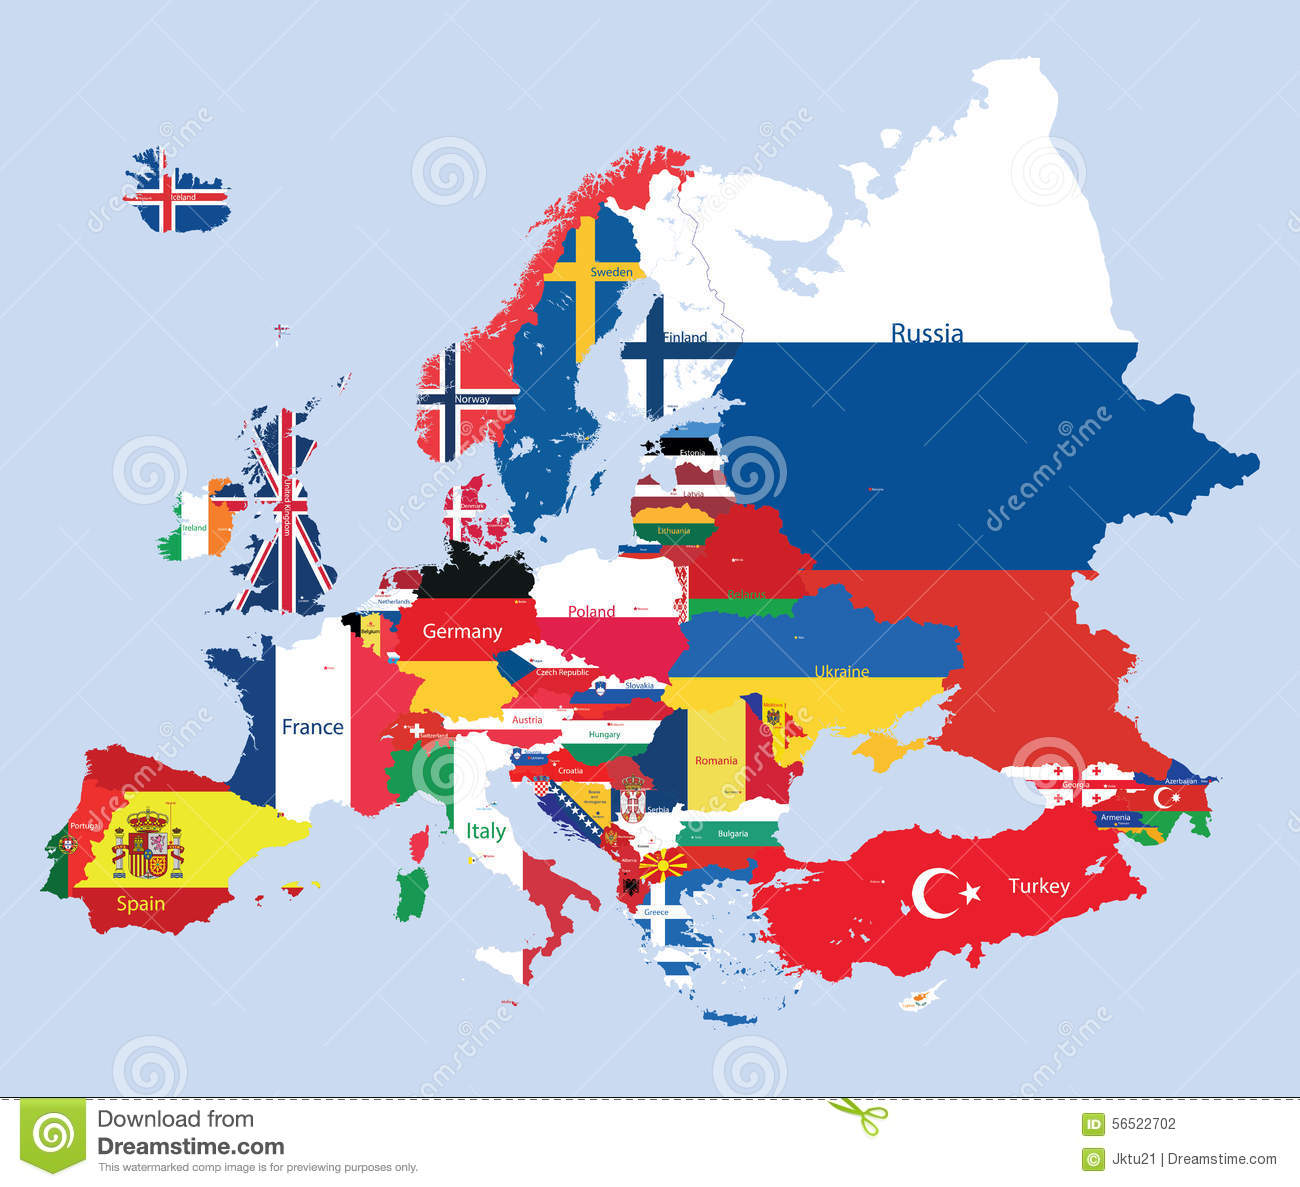 Kare Design Nederland Vector European Map Combined With Flags Stock Vector